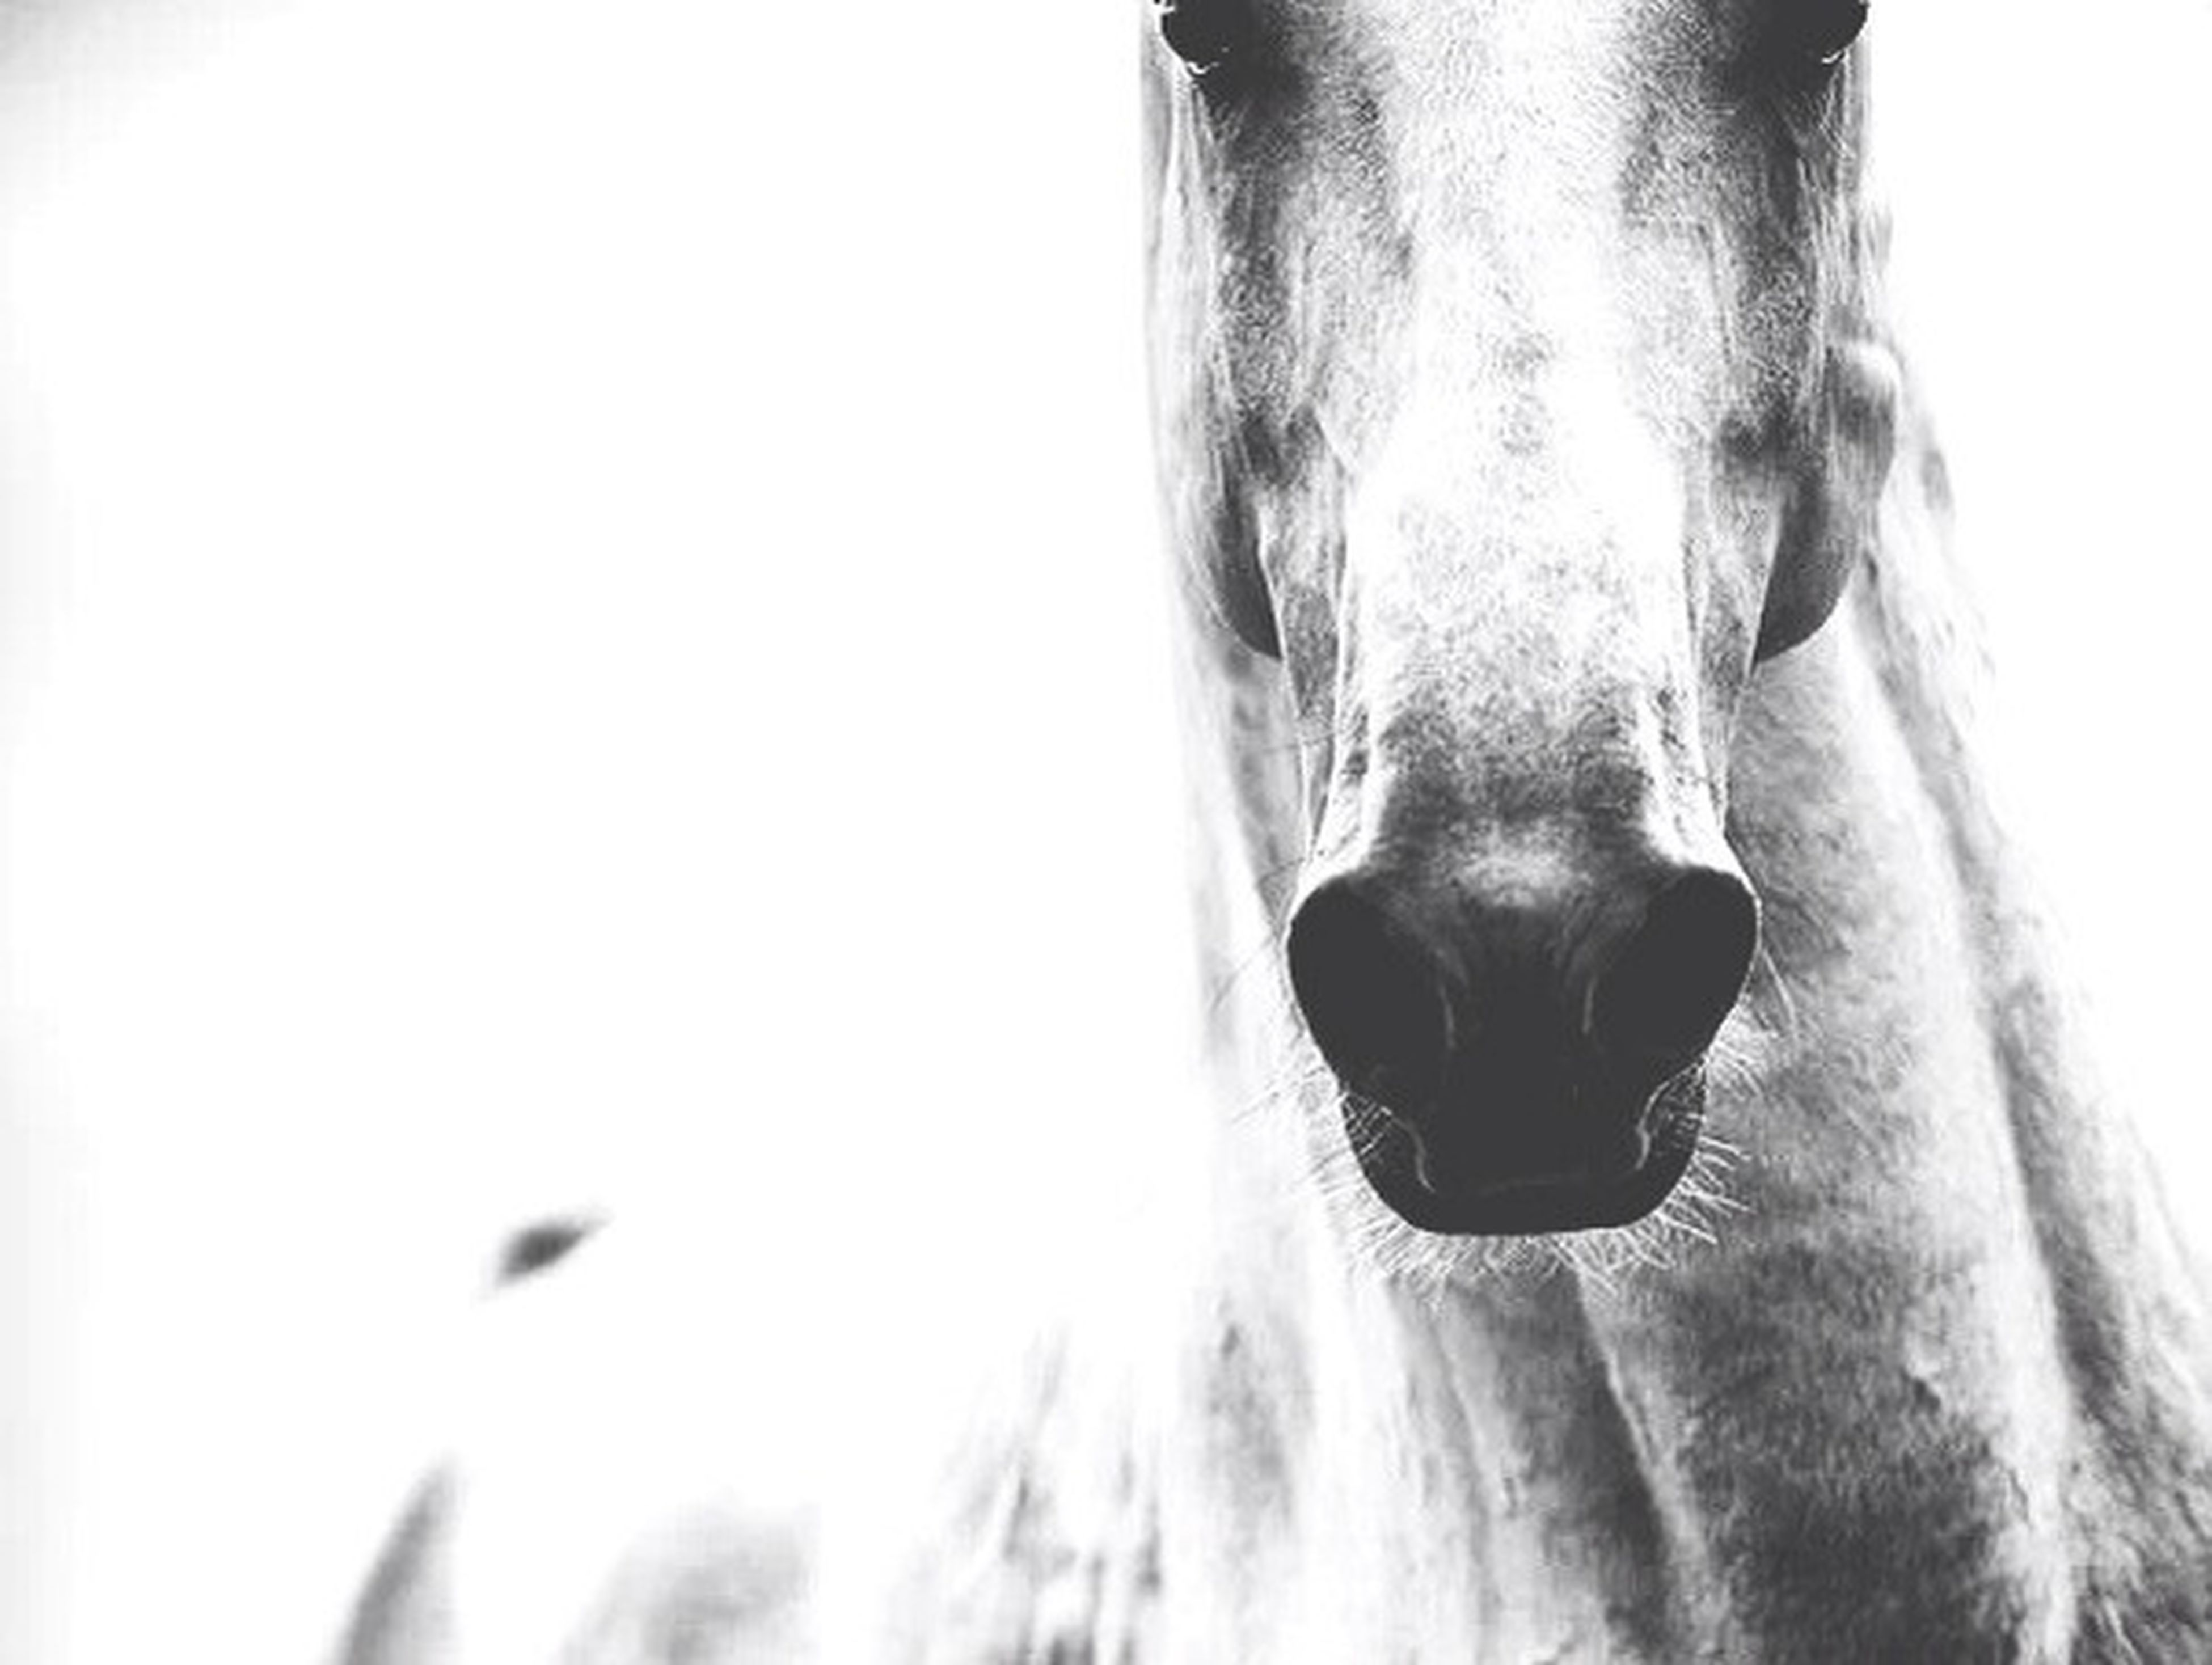 clear sky, close-up, horse, one person, copy space, low angle view, one animal, front view, animal head, studio shot, part of, animal body part, animal themes, portrait, white background, looking at camera, day, headshot, outdoors, side view